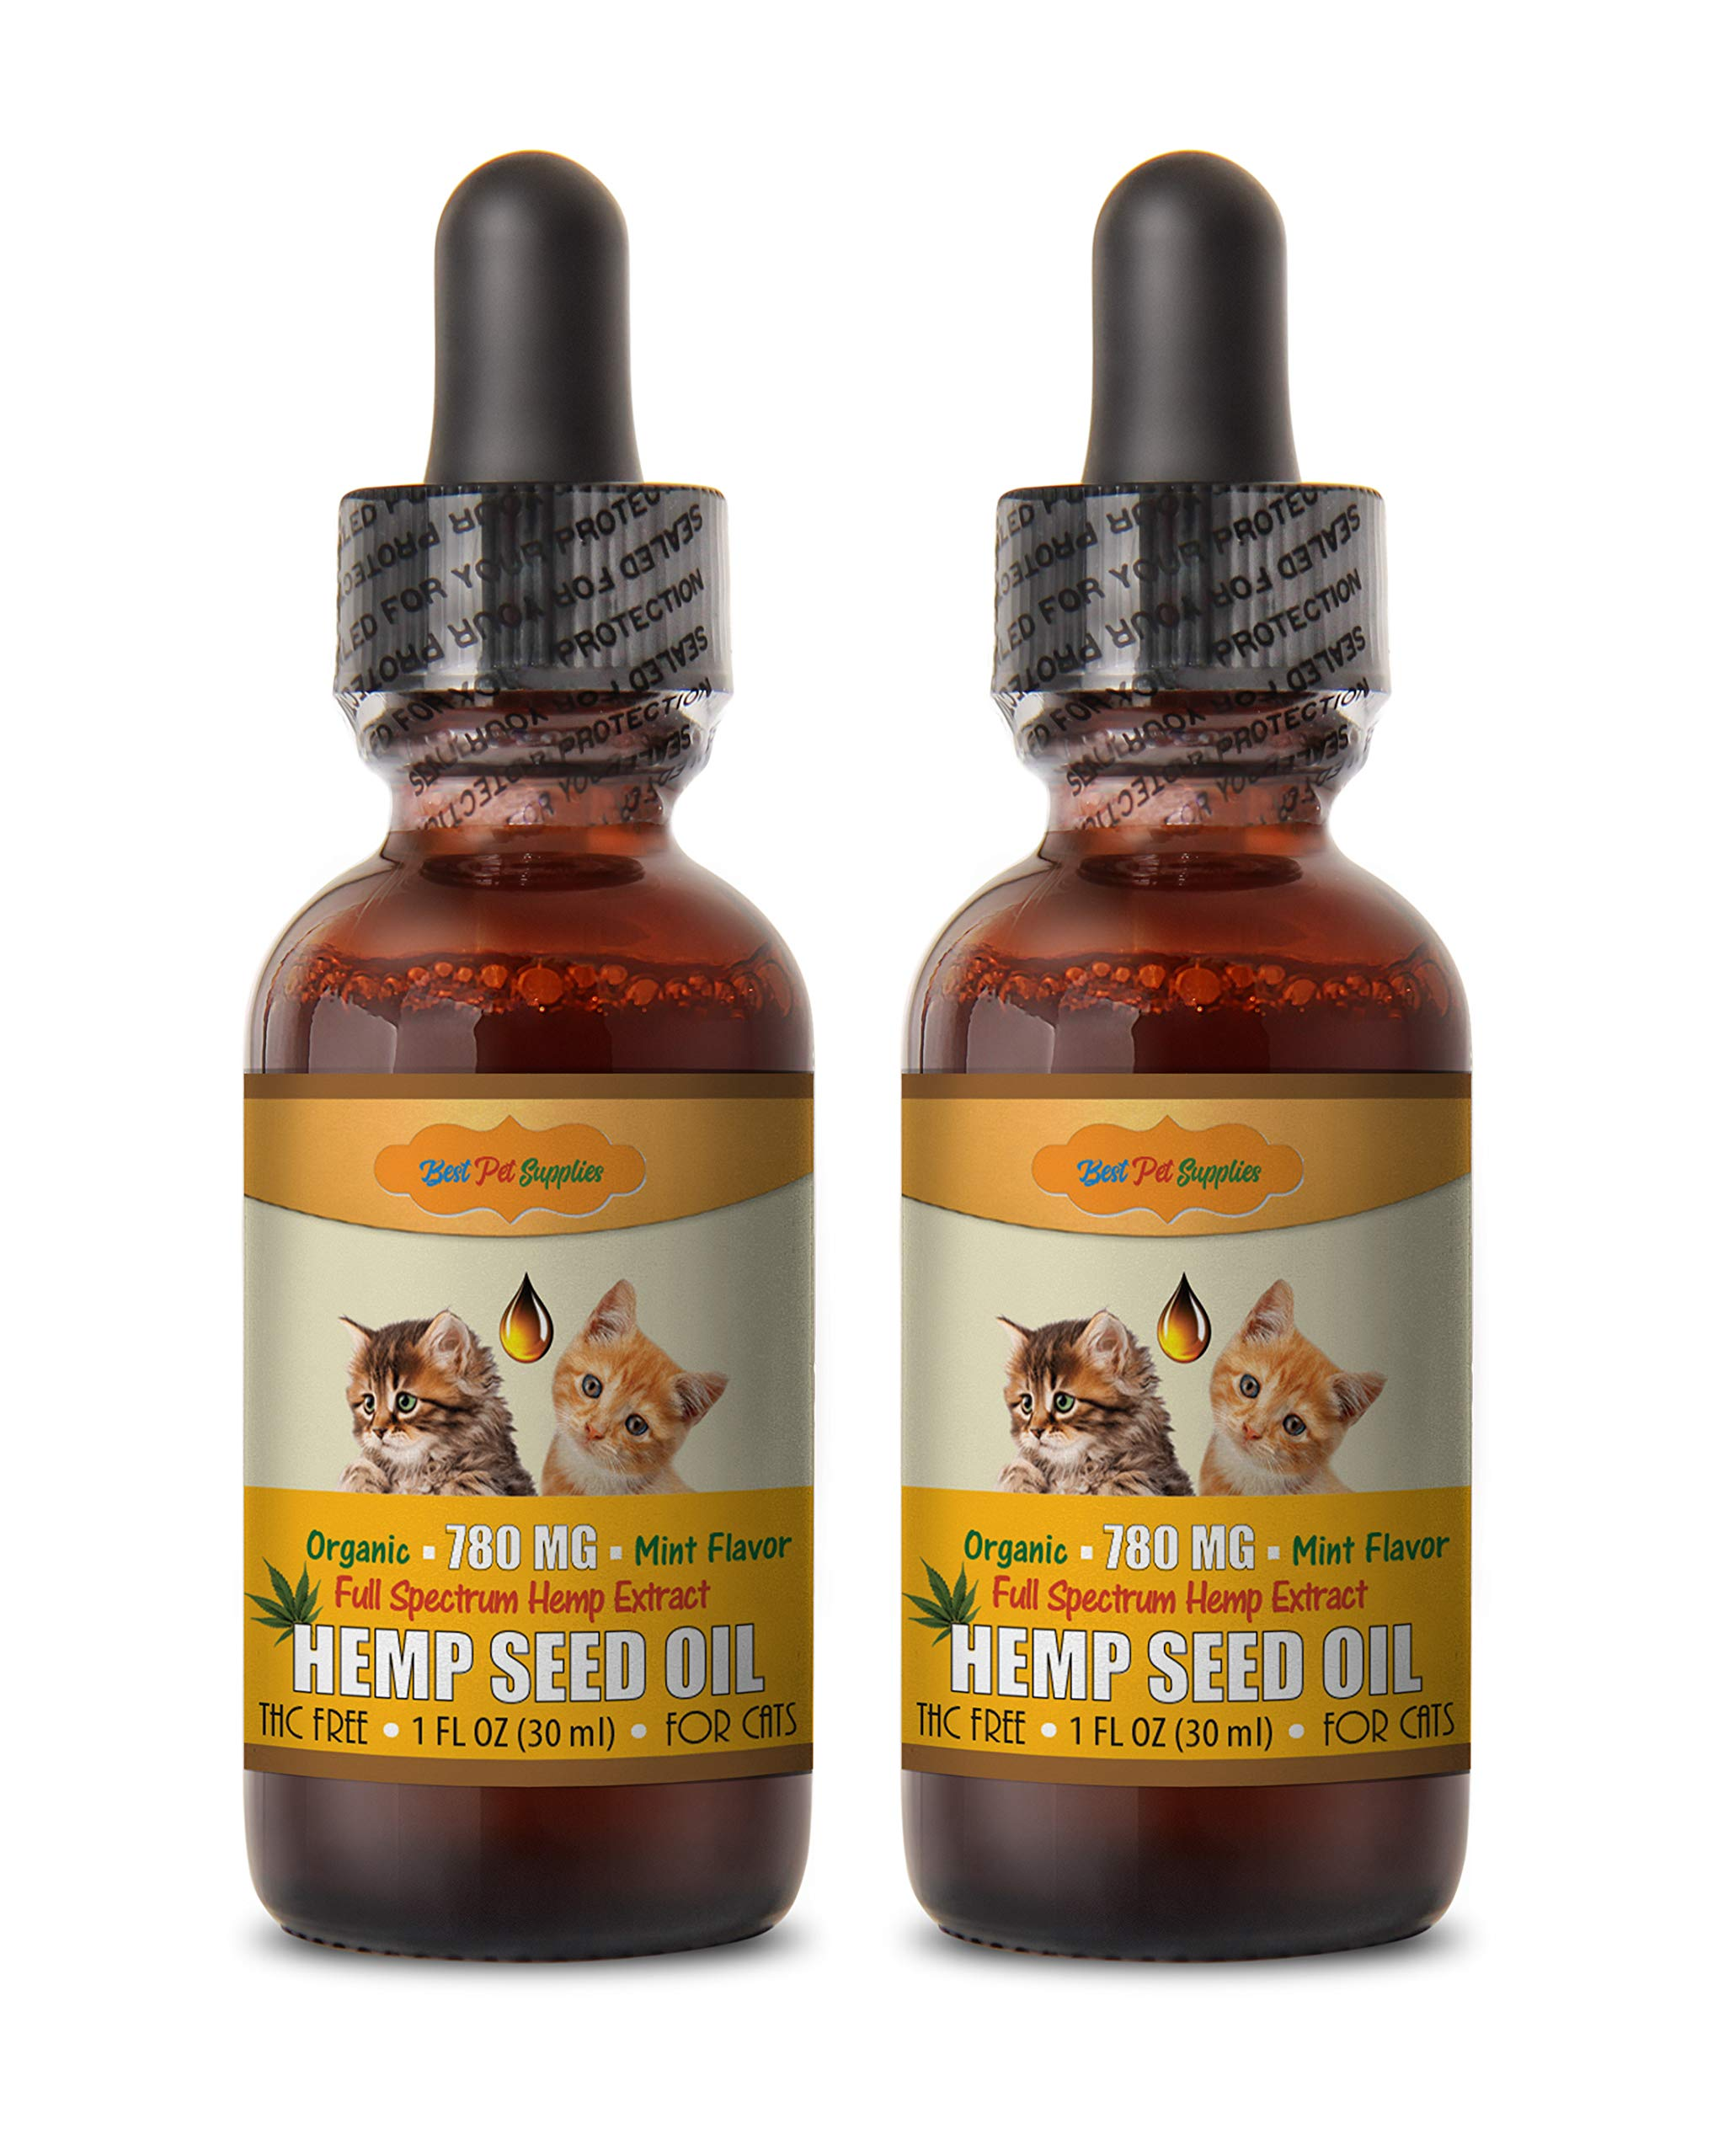 cat Skin Vitamins - CAT Hemp Seed Oil Extract 780MG Drops - with Omega - Natural - Best Anxiety and Pain Relief - cat Omega 3 Treats - 2 Bottles (60 ML)